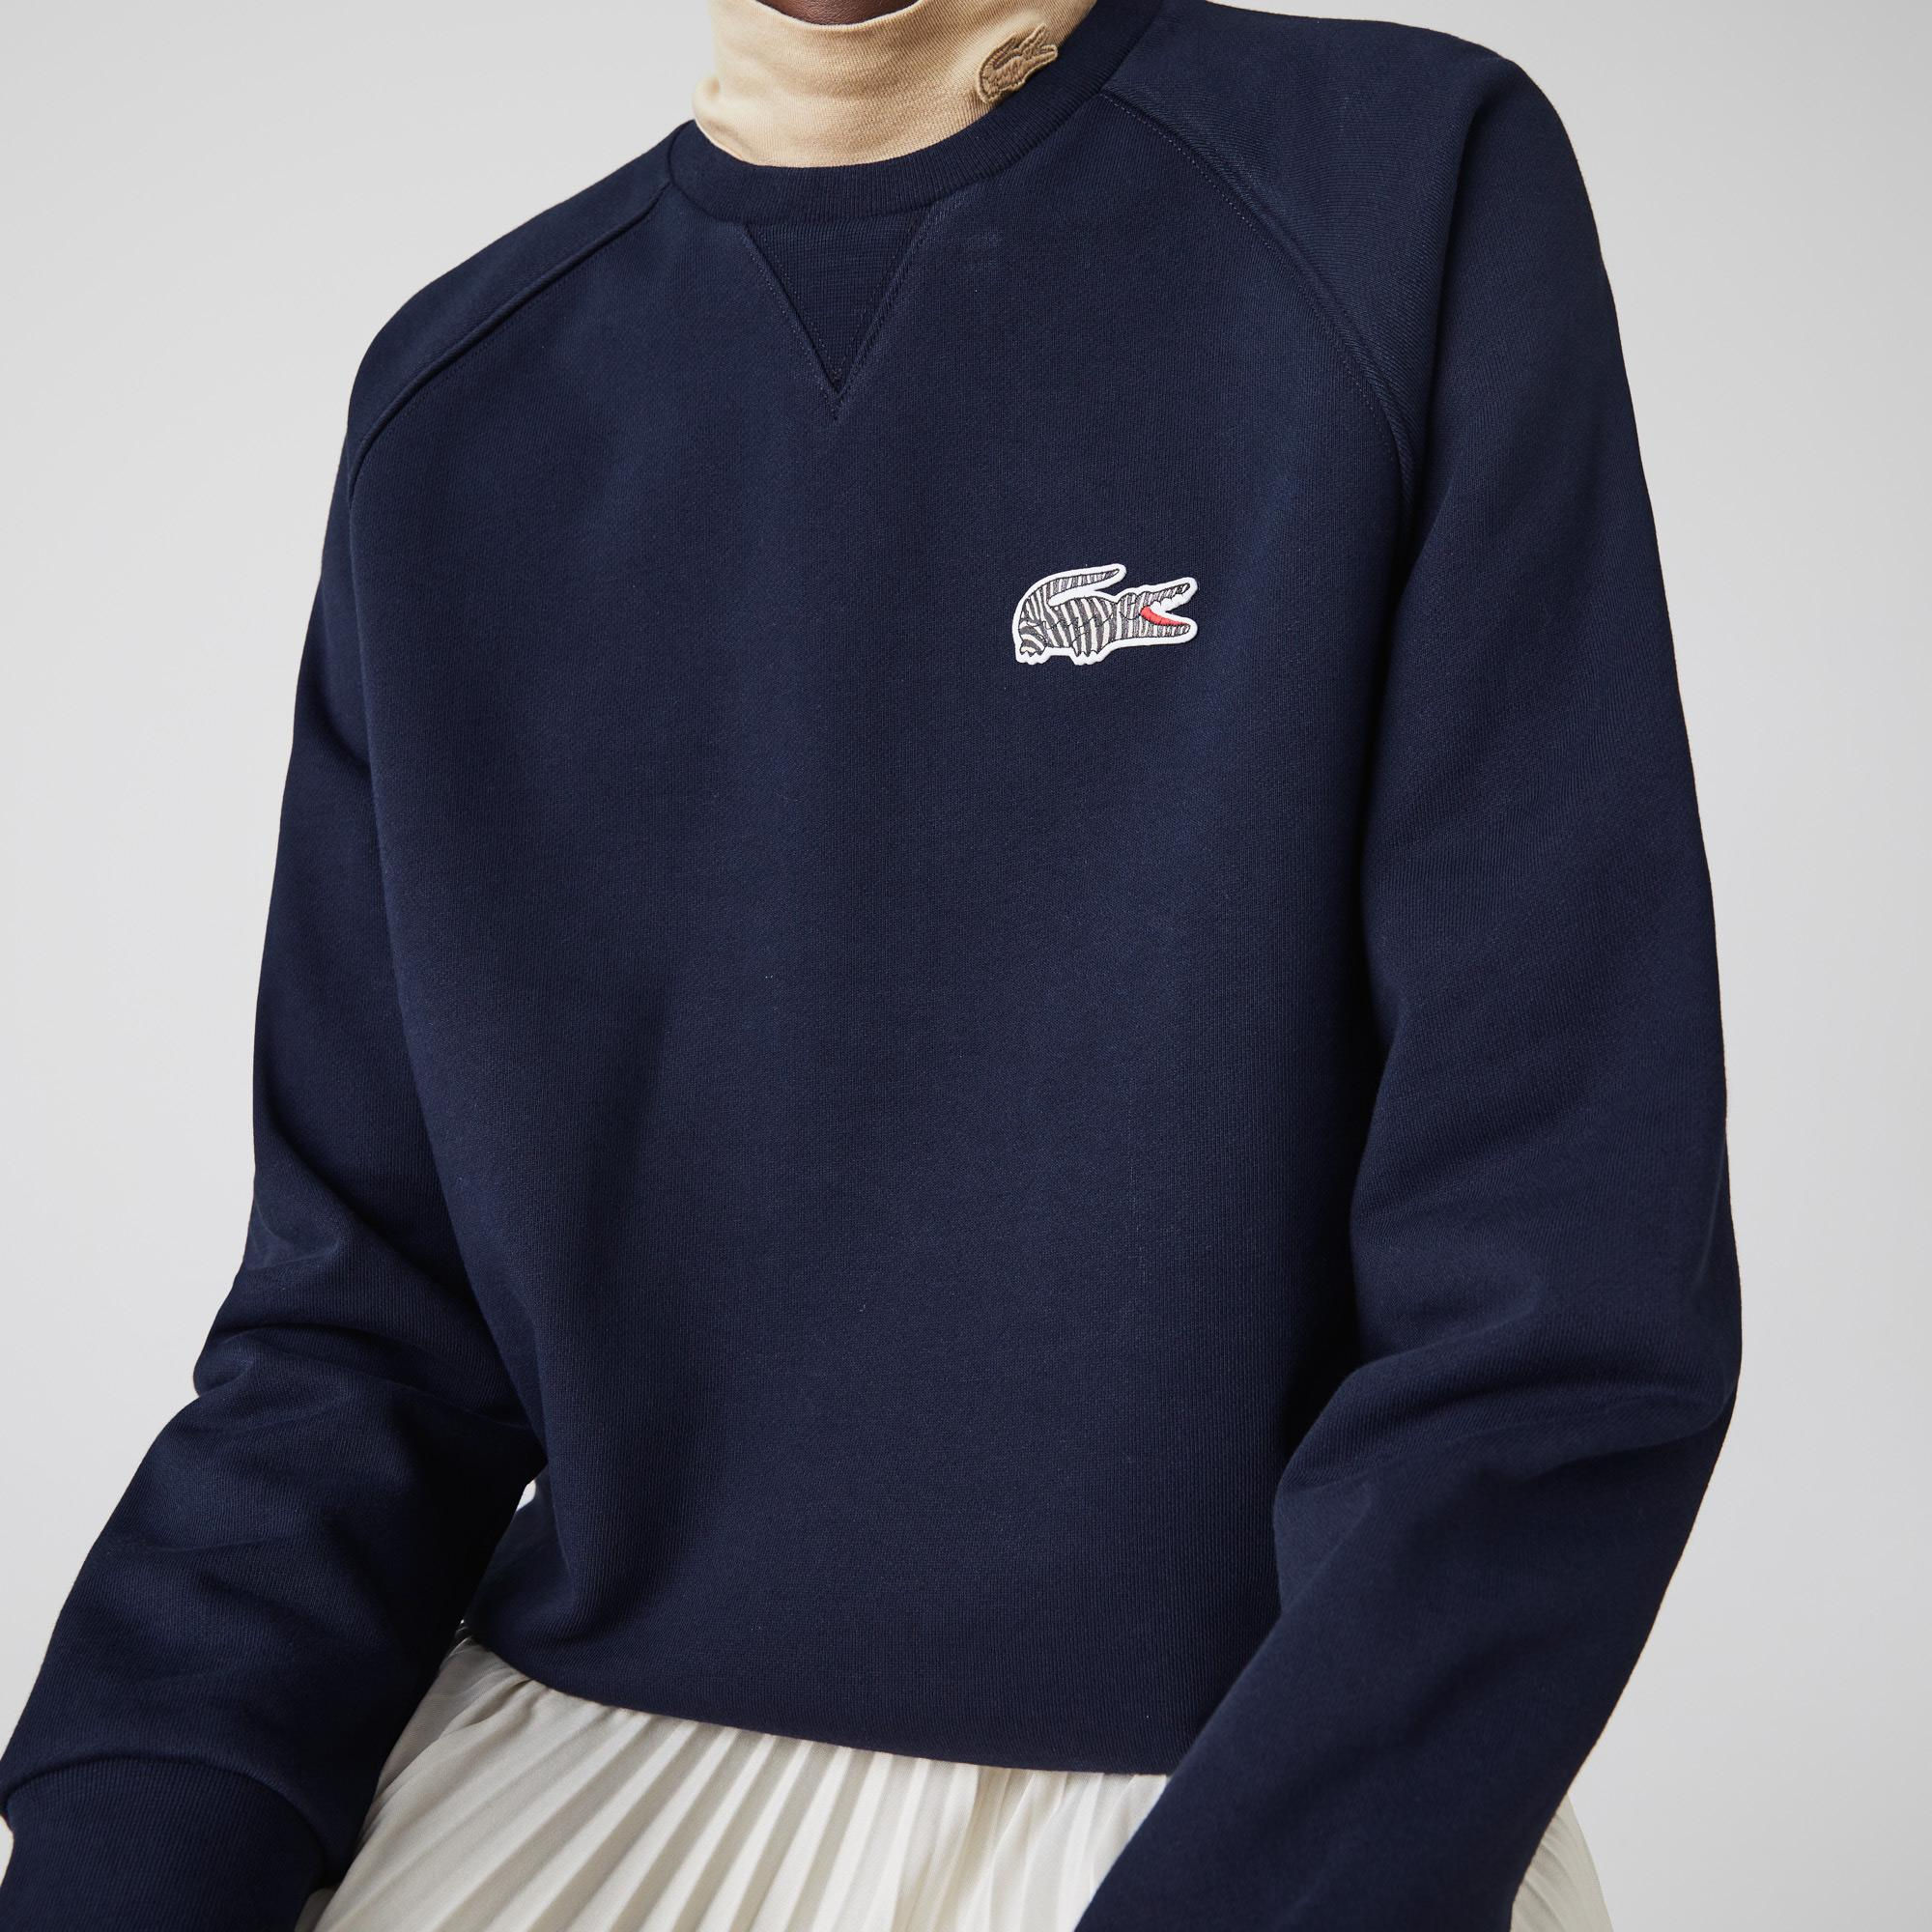 Lacoste Women's x National Geographic Cotton Fleece Sweatshirt